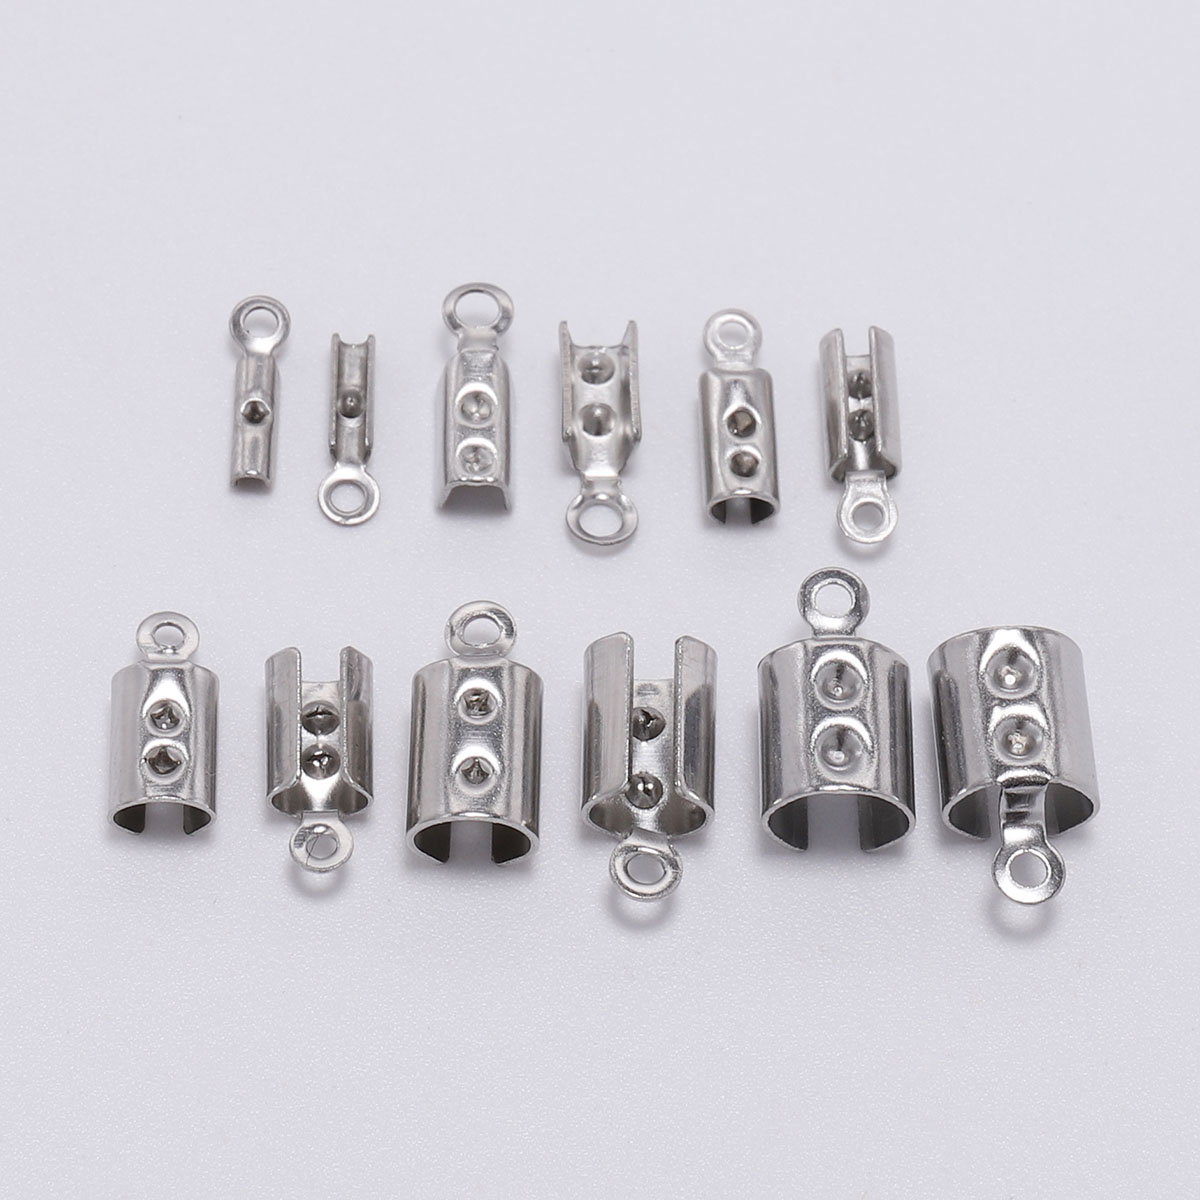 50pcs Stainless Steel Cords Crimp End Beads Caps Leather Clip Tip Fold Crimp Bead Bracelet Connectors For Jewelry Making Finding